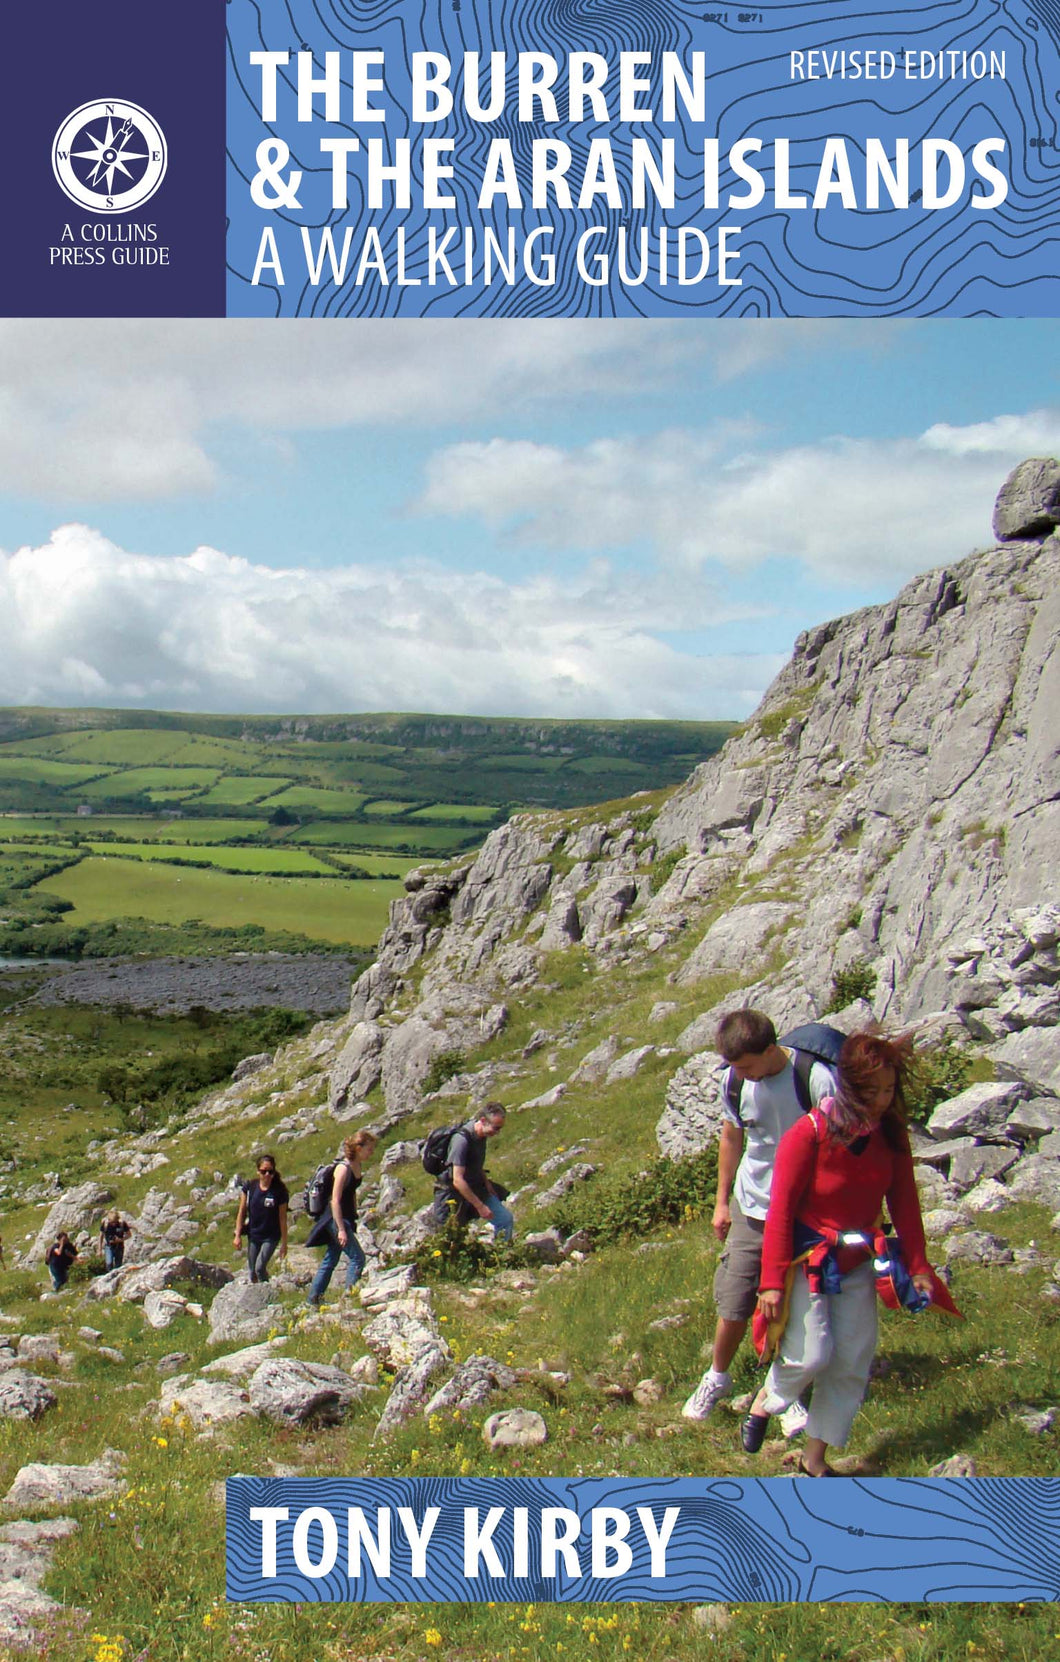 The Burren & the Aran Islands - A Walking Guide